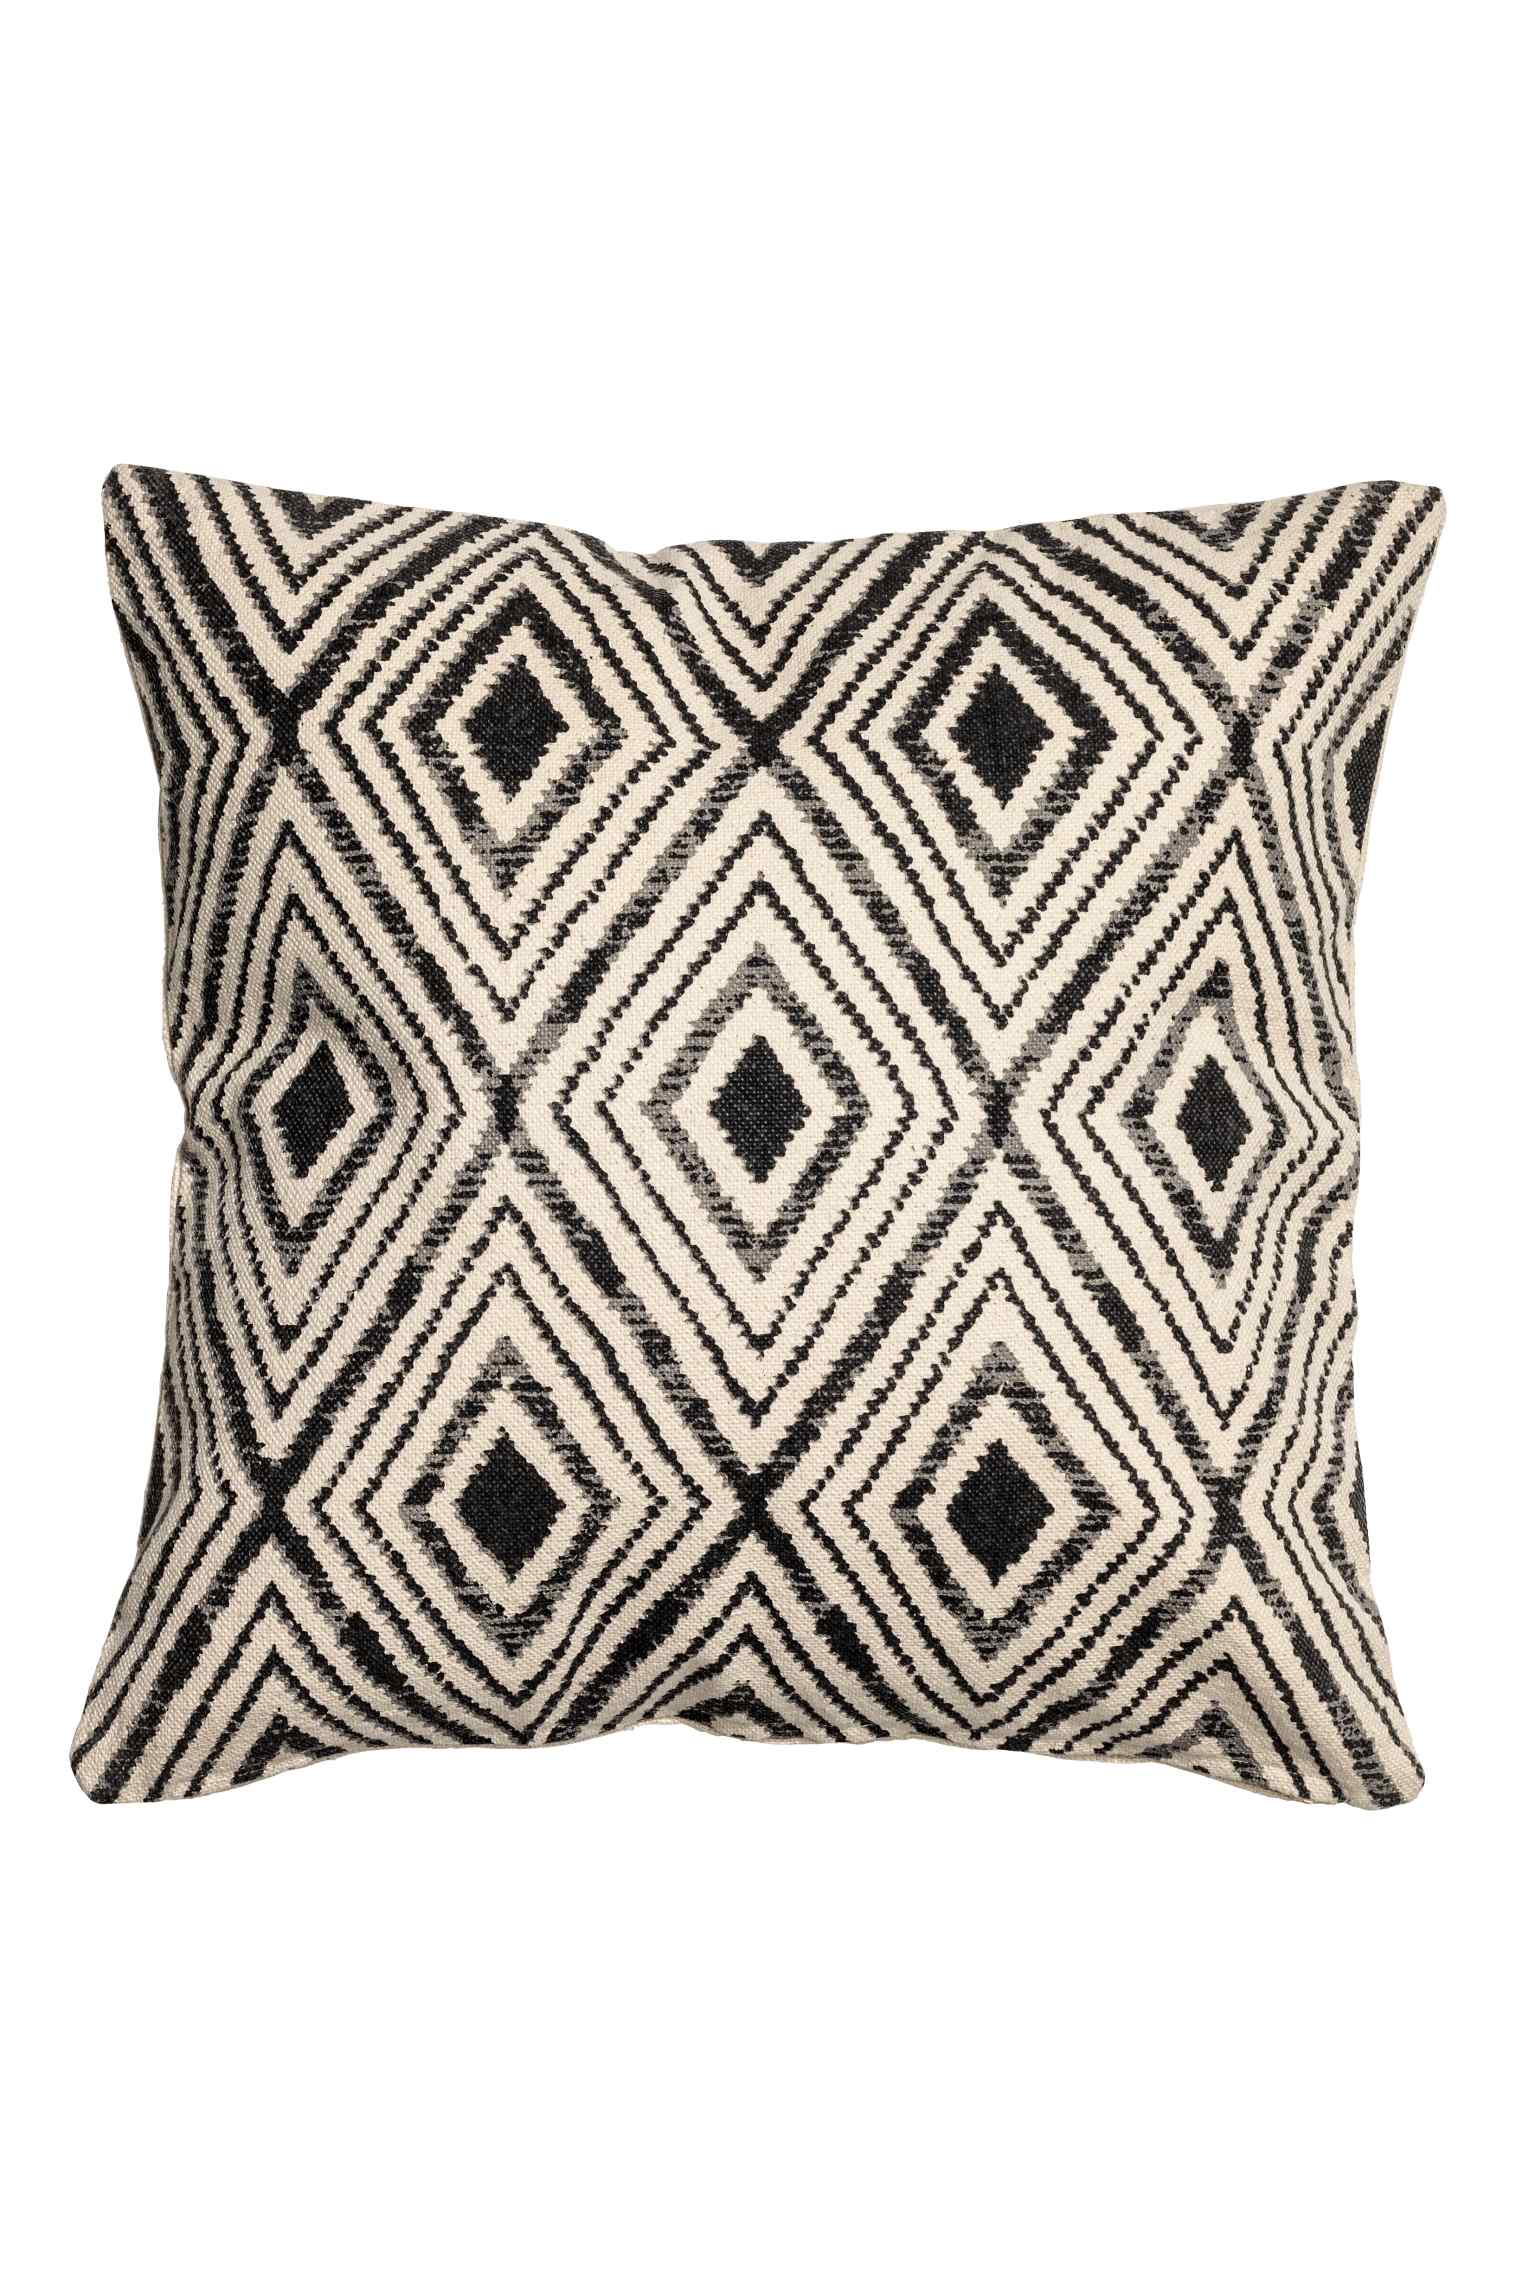 Patterned cushion cover, 20in, $15